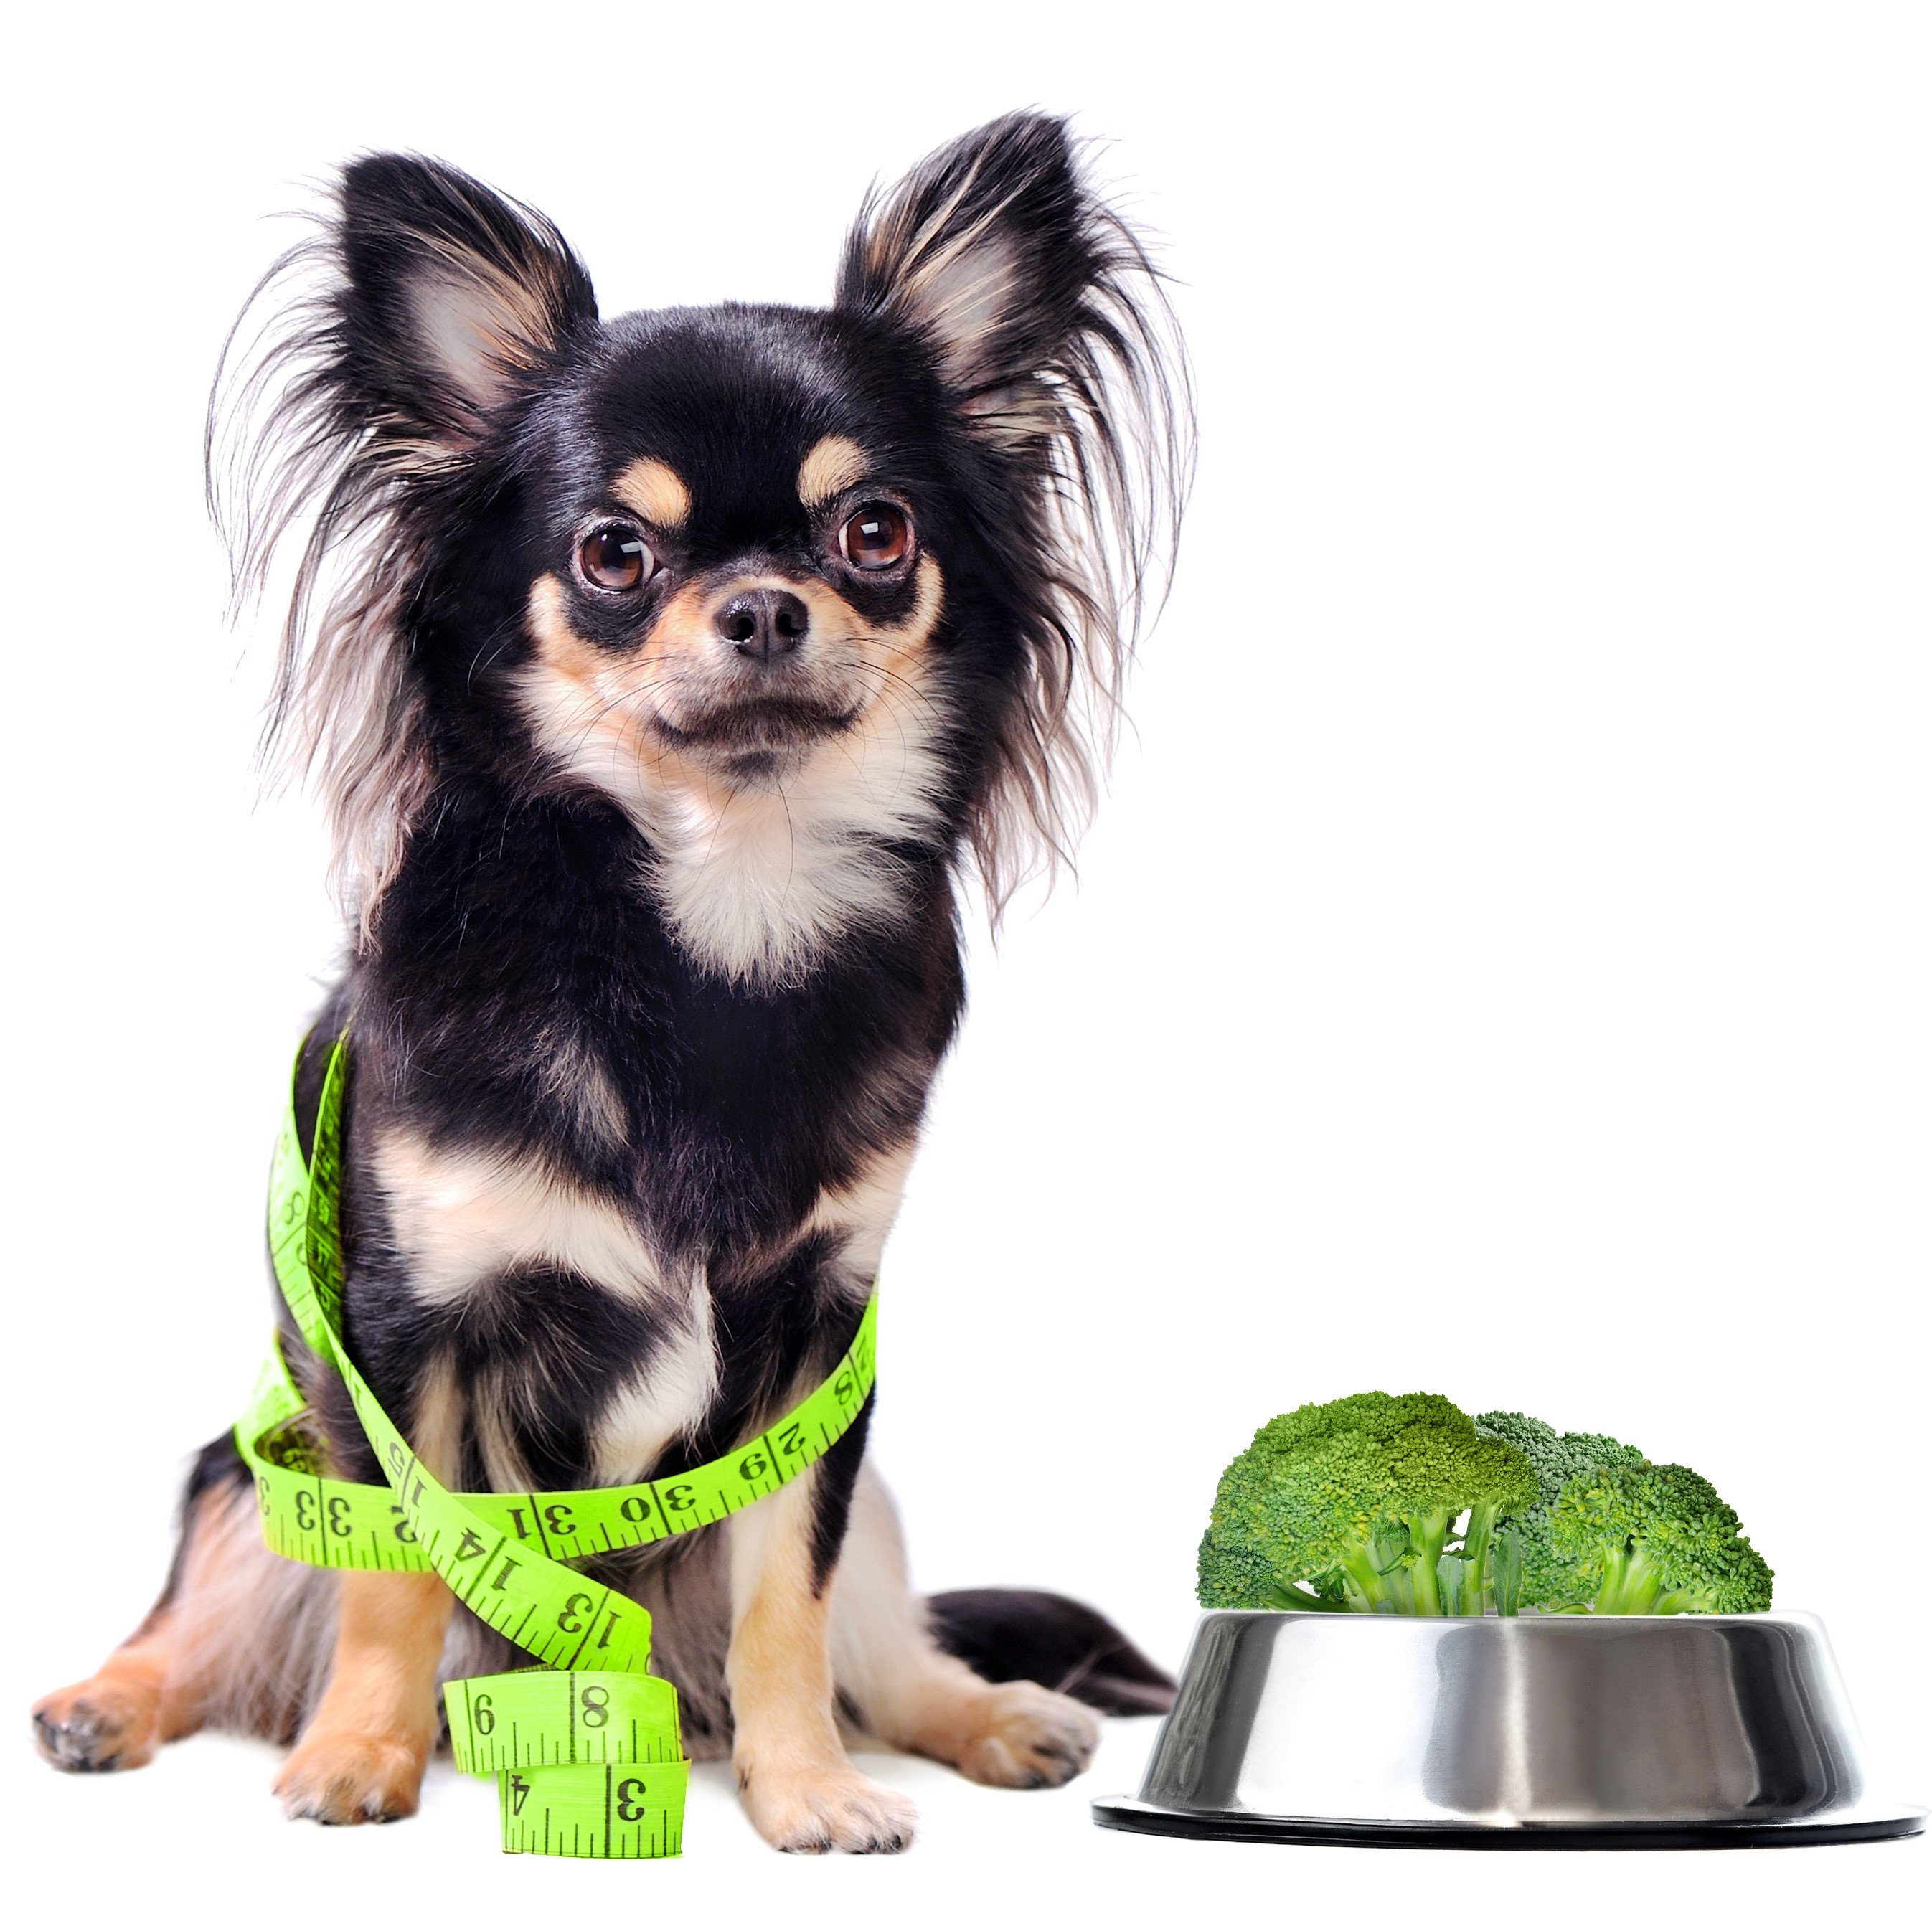 Vegetarian Dog with a Bowl of Broccoli